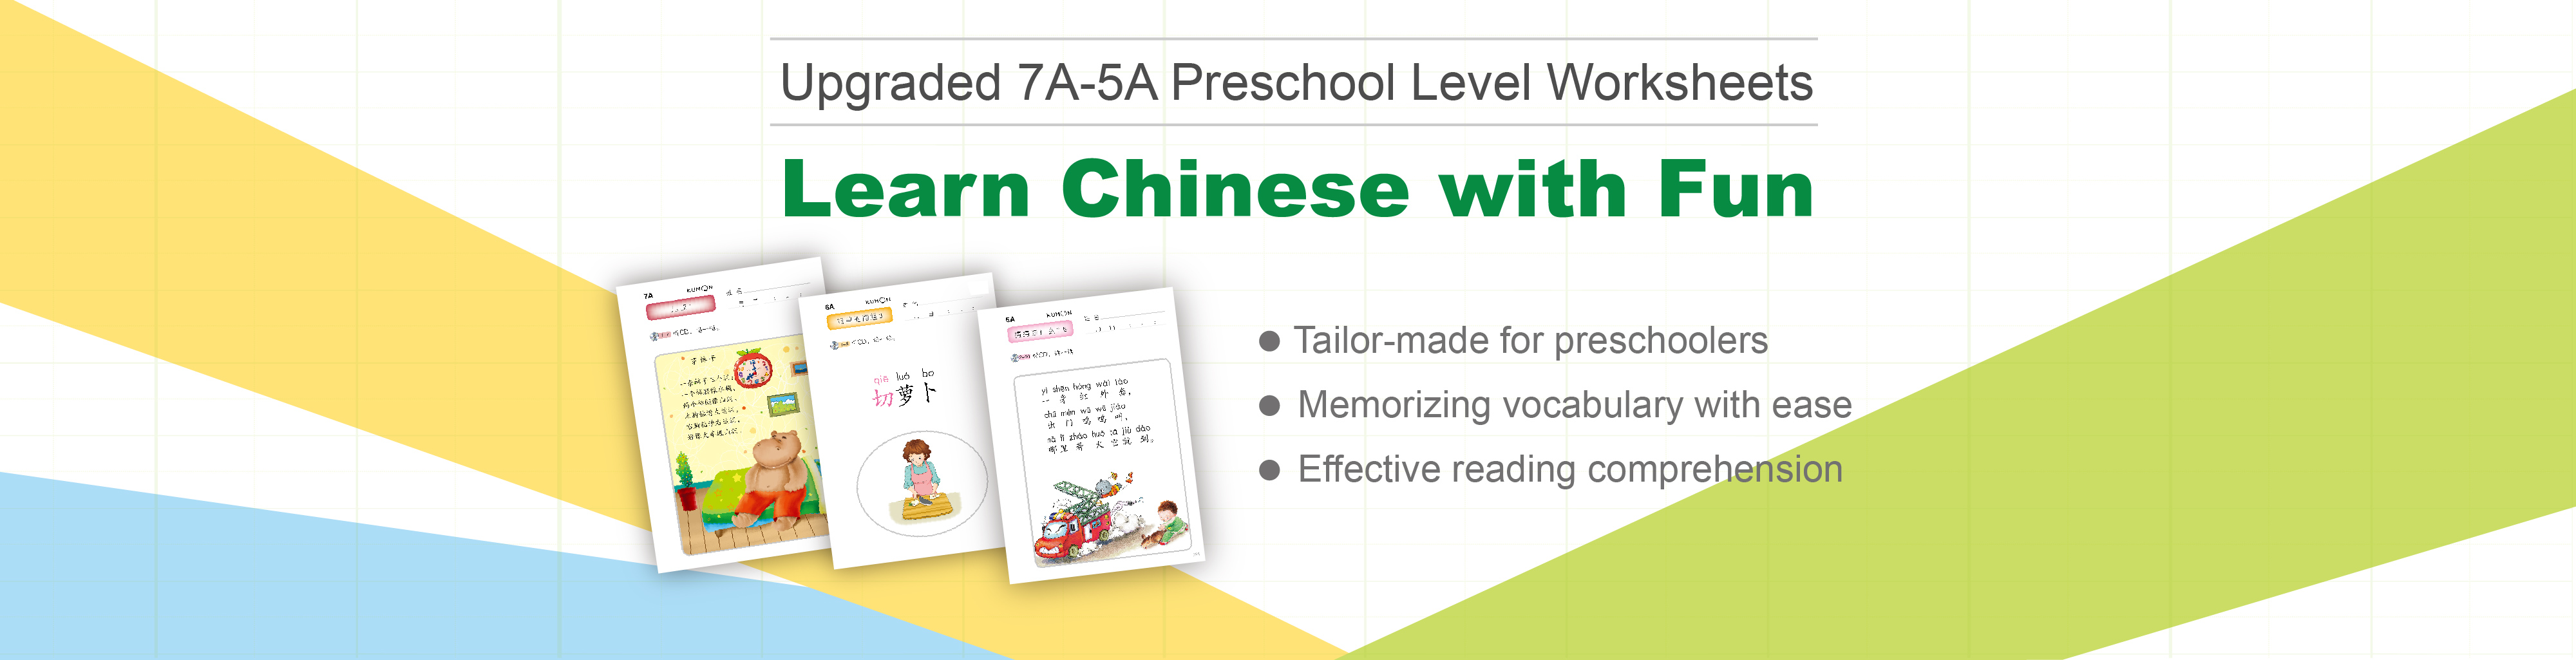 Worksheets Kumon Worksheet upgraded chinese level 7a 5a worksheets chinese7a 2a 1215 final 04